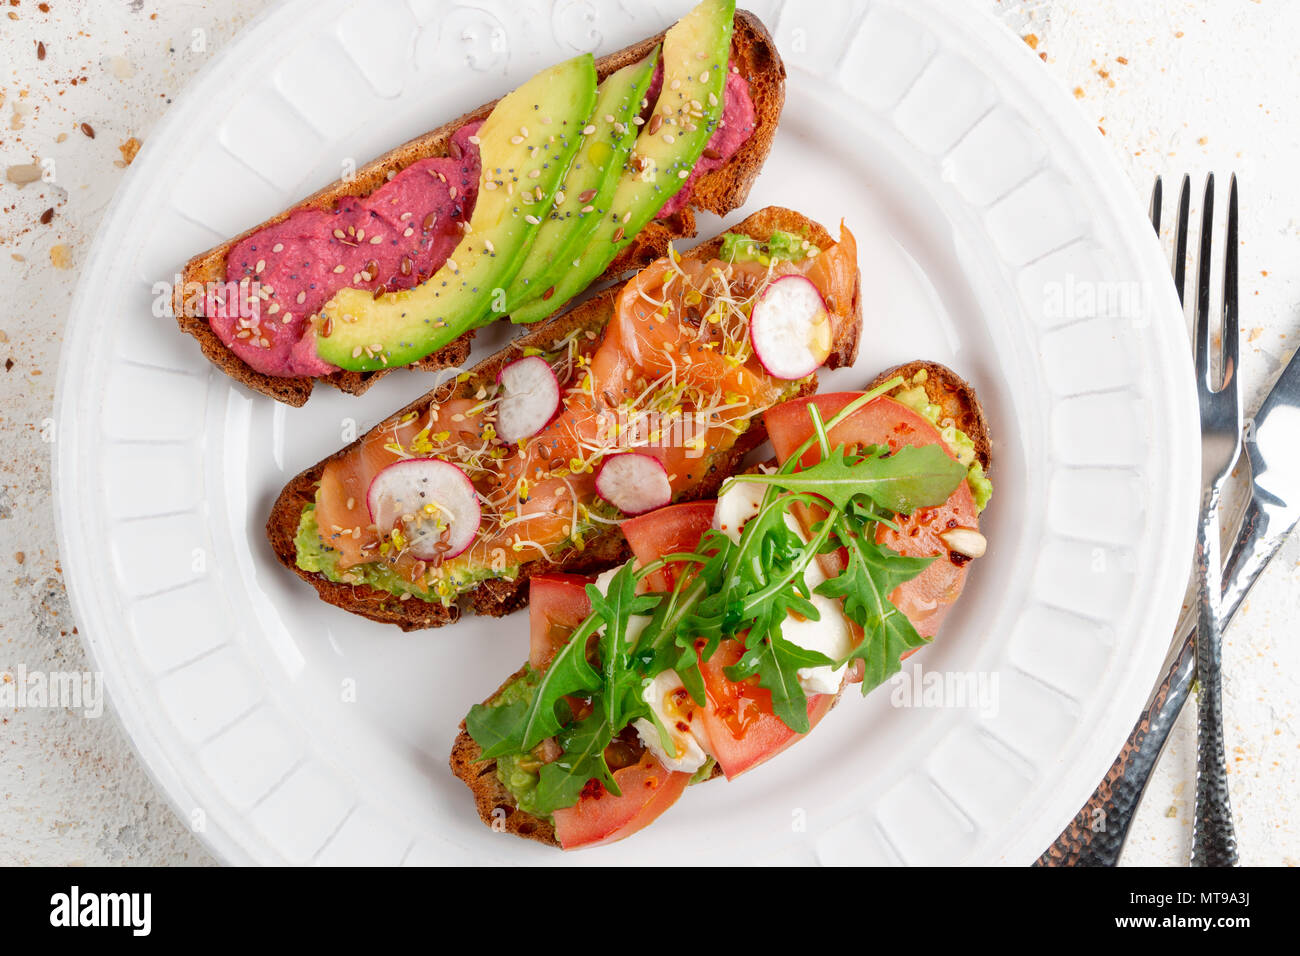 Assortment of healthy breakfast toasts on a dish on a white rustic background. Top view - Stock Image